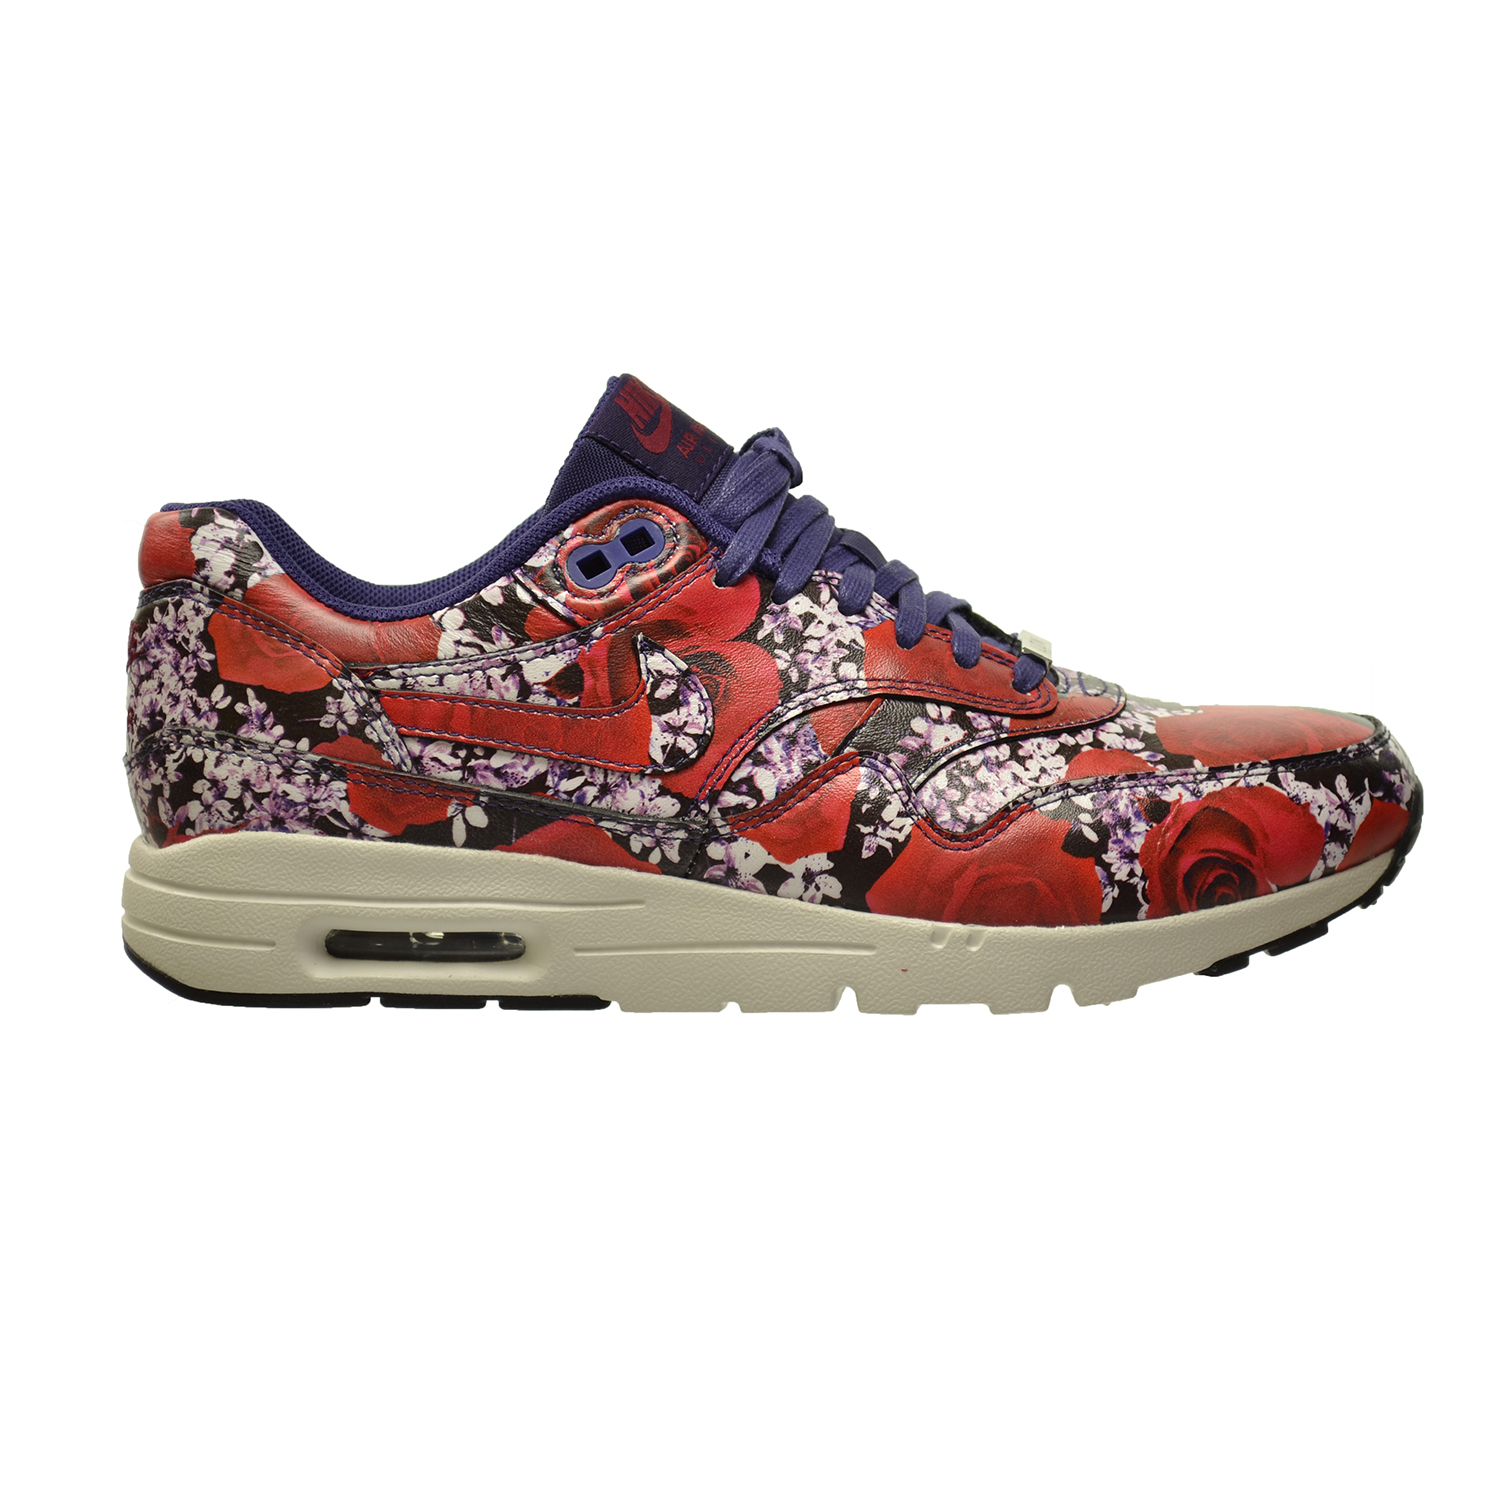 new product f63f7 75447 ... denmark nike air max 1 ultra lotc qs london womens shoes ink ink summit  white team